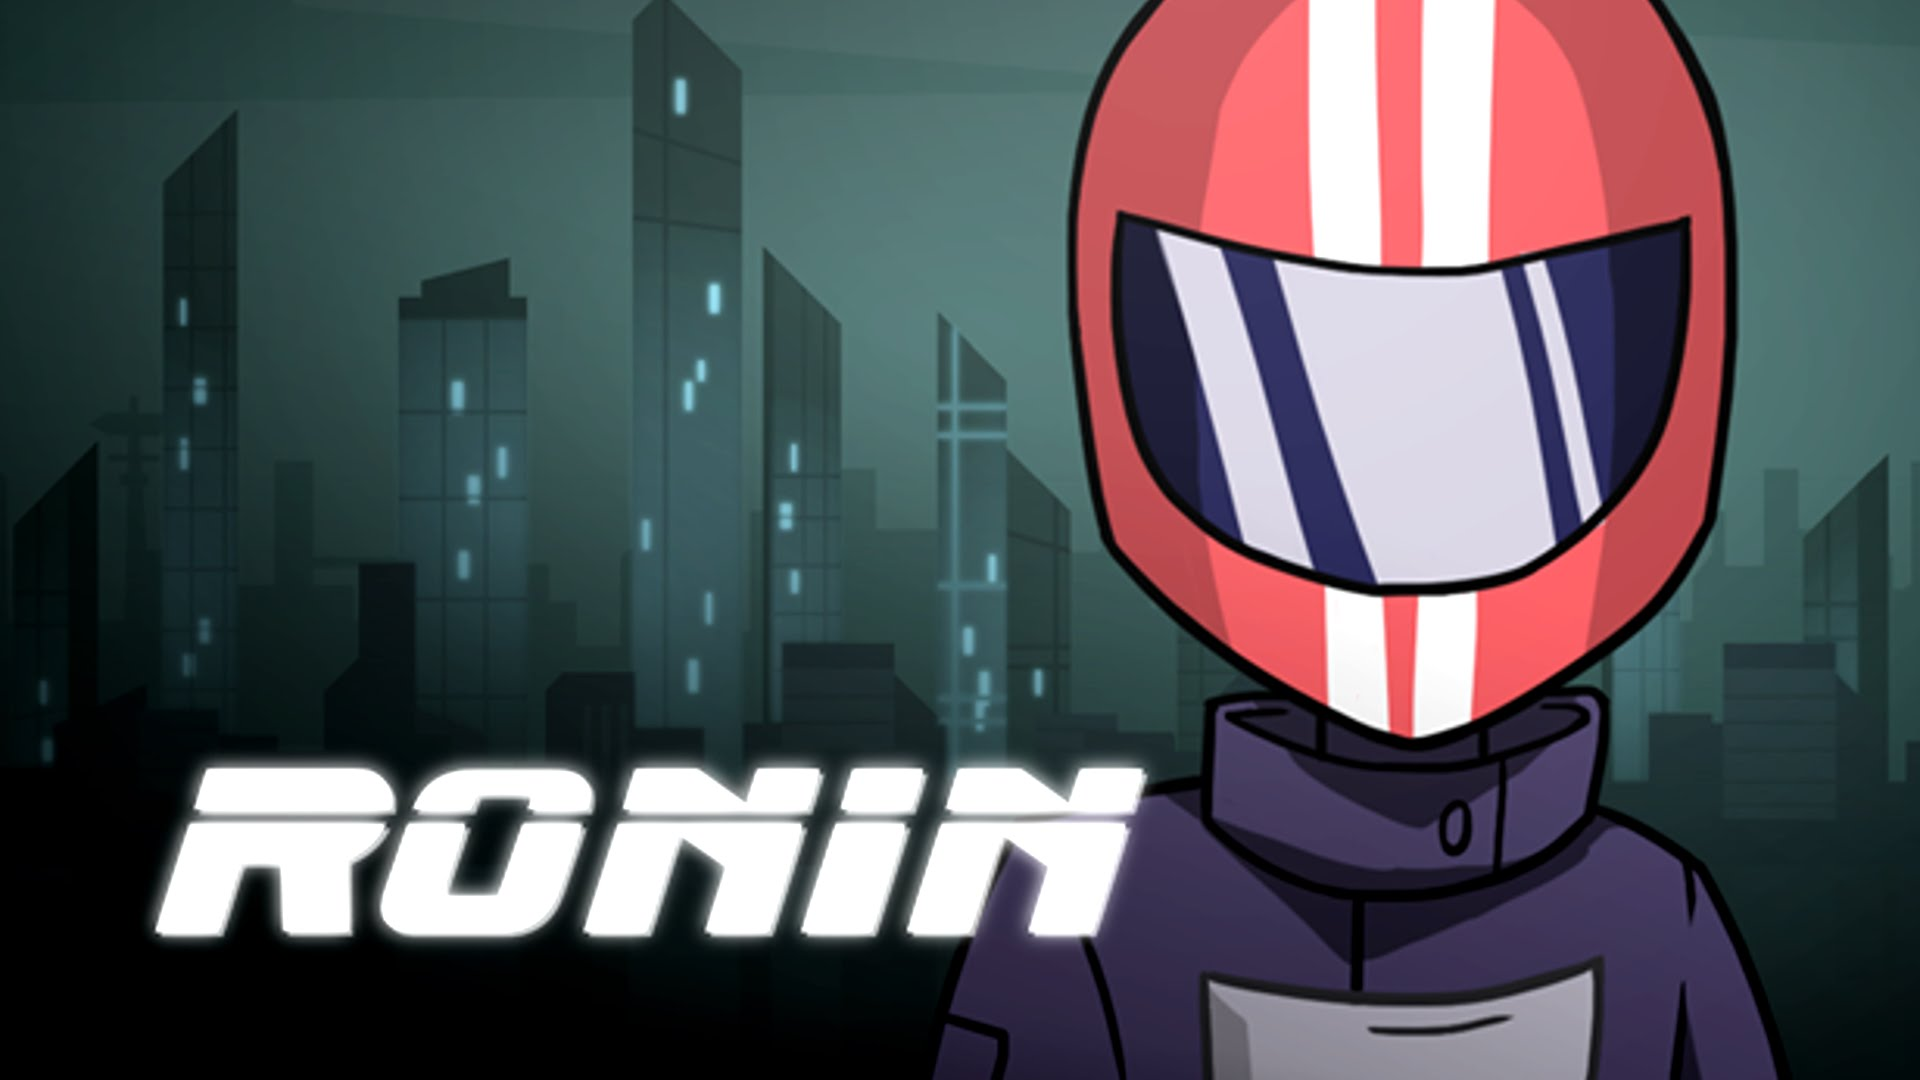 Ronin Review